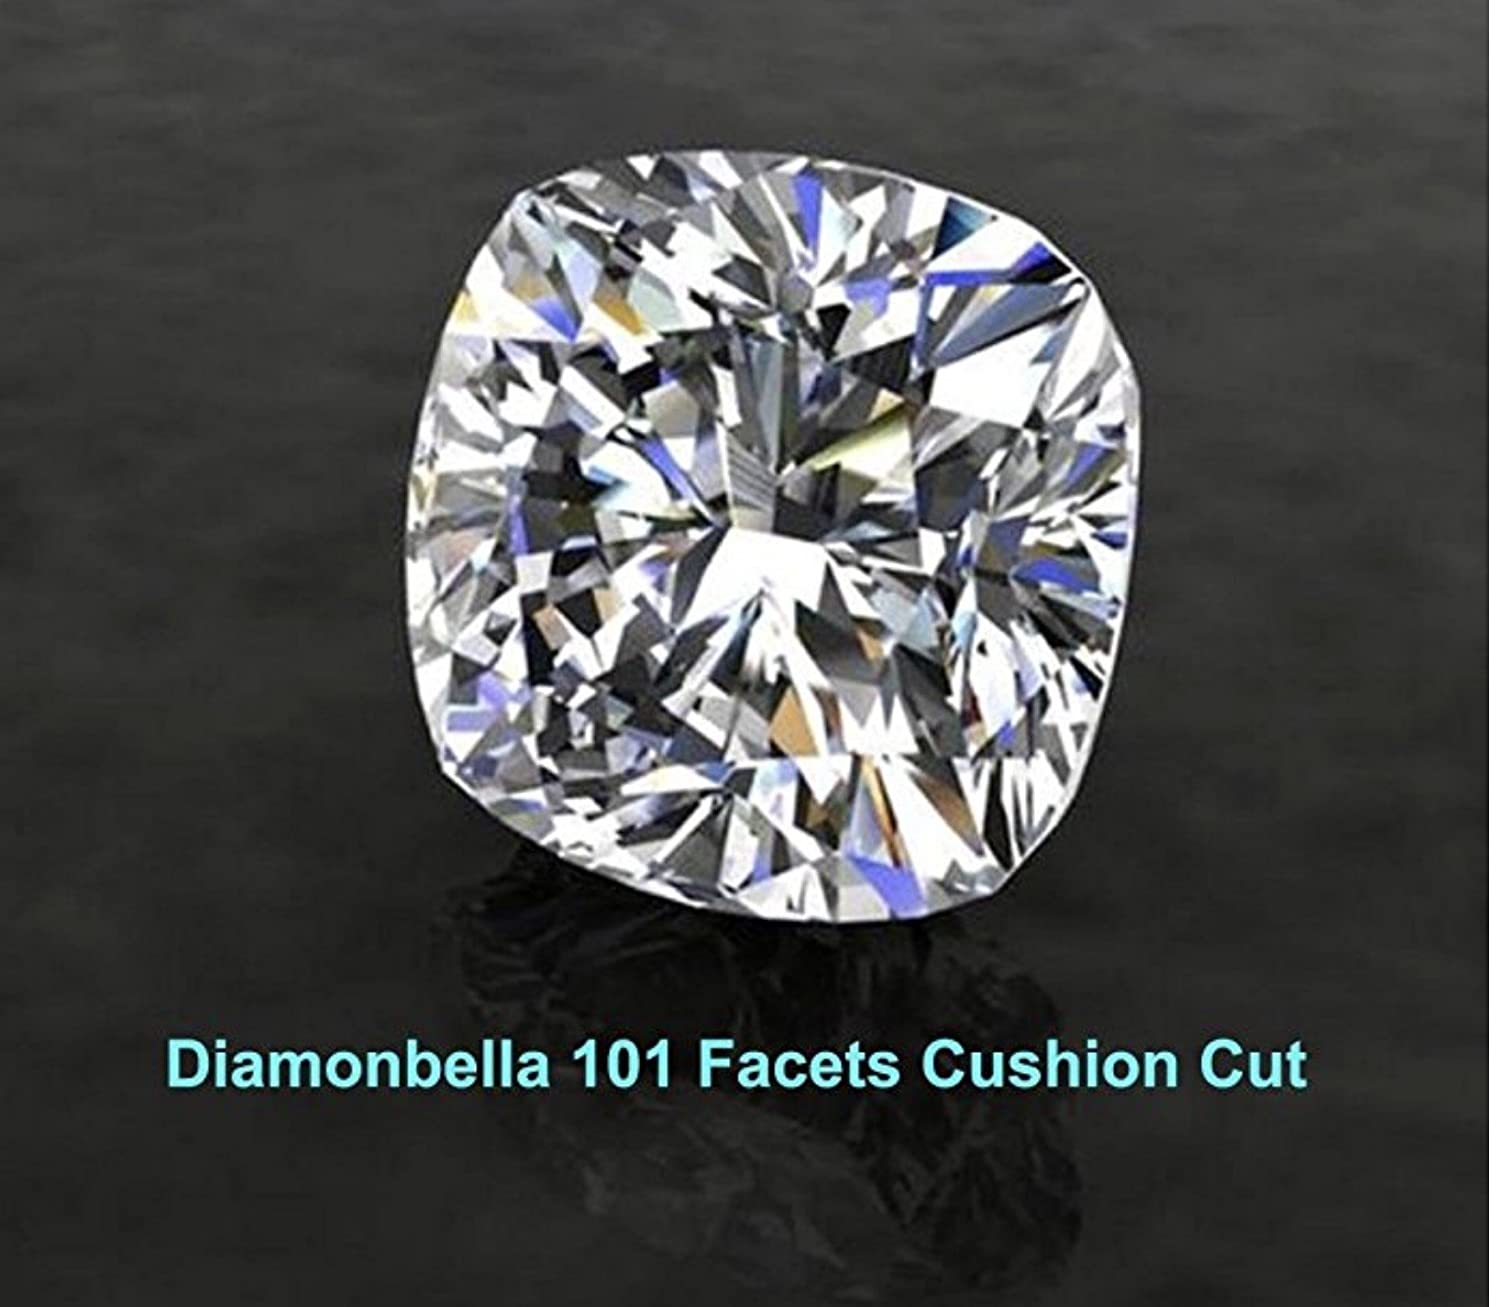 Diamonbella 101 Facets 2 Carat Princess Cushion Cut NSCD Simulated Diamond Ring Double Band Set 925 Silver Platinum Plated Halo